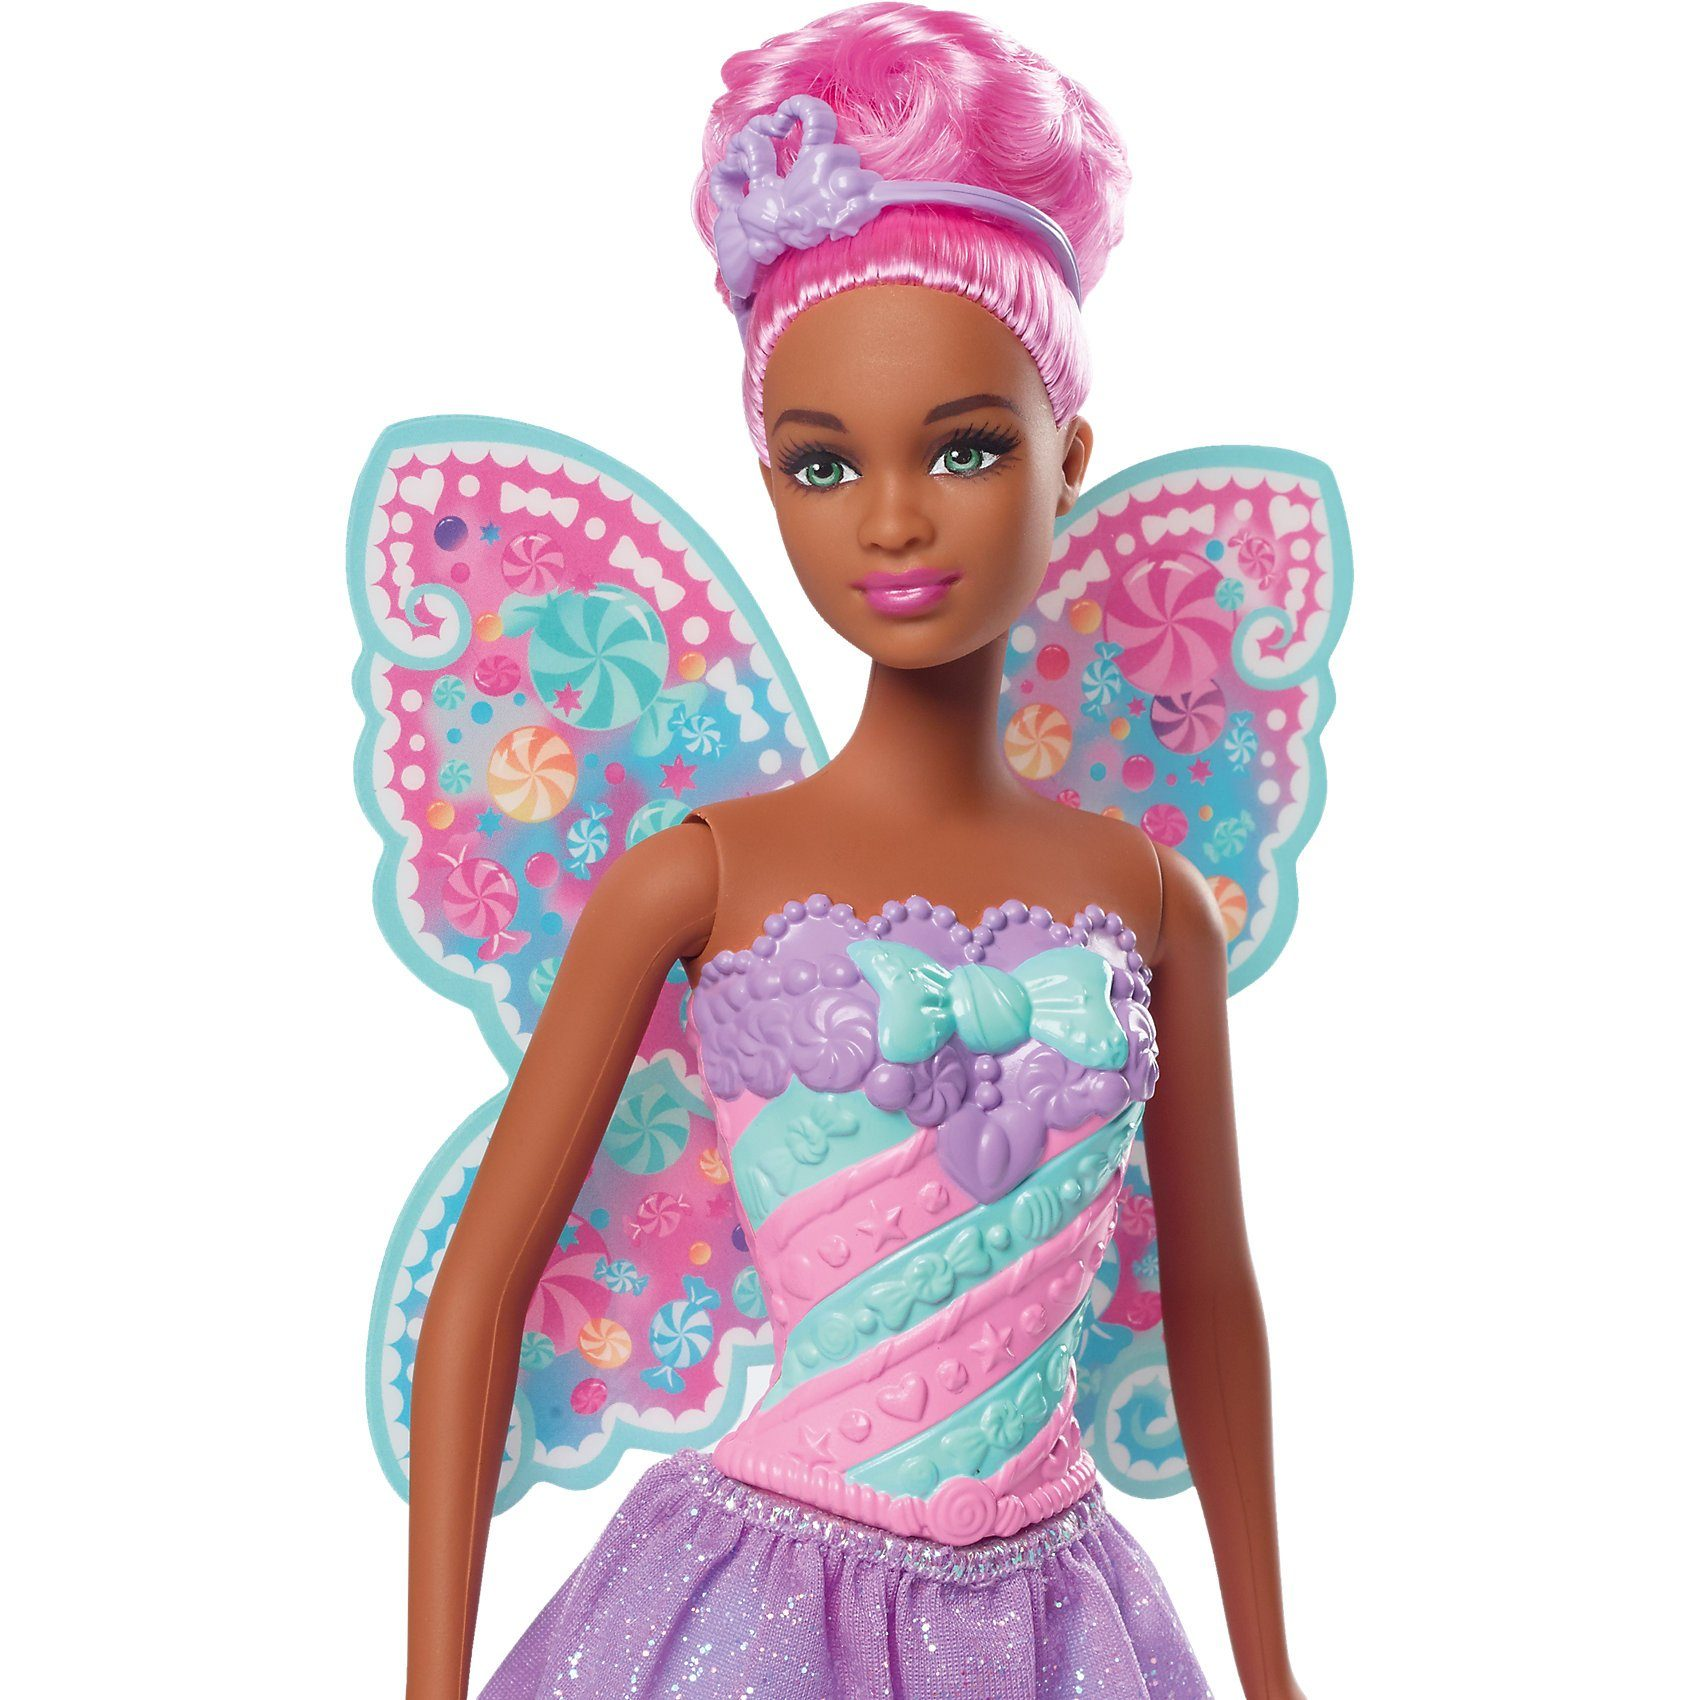 Mattel Barbie Dreamtopia Feen: Bonbon-Fee